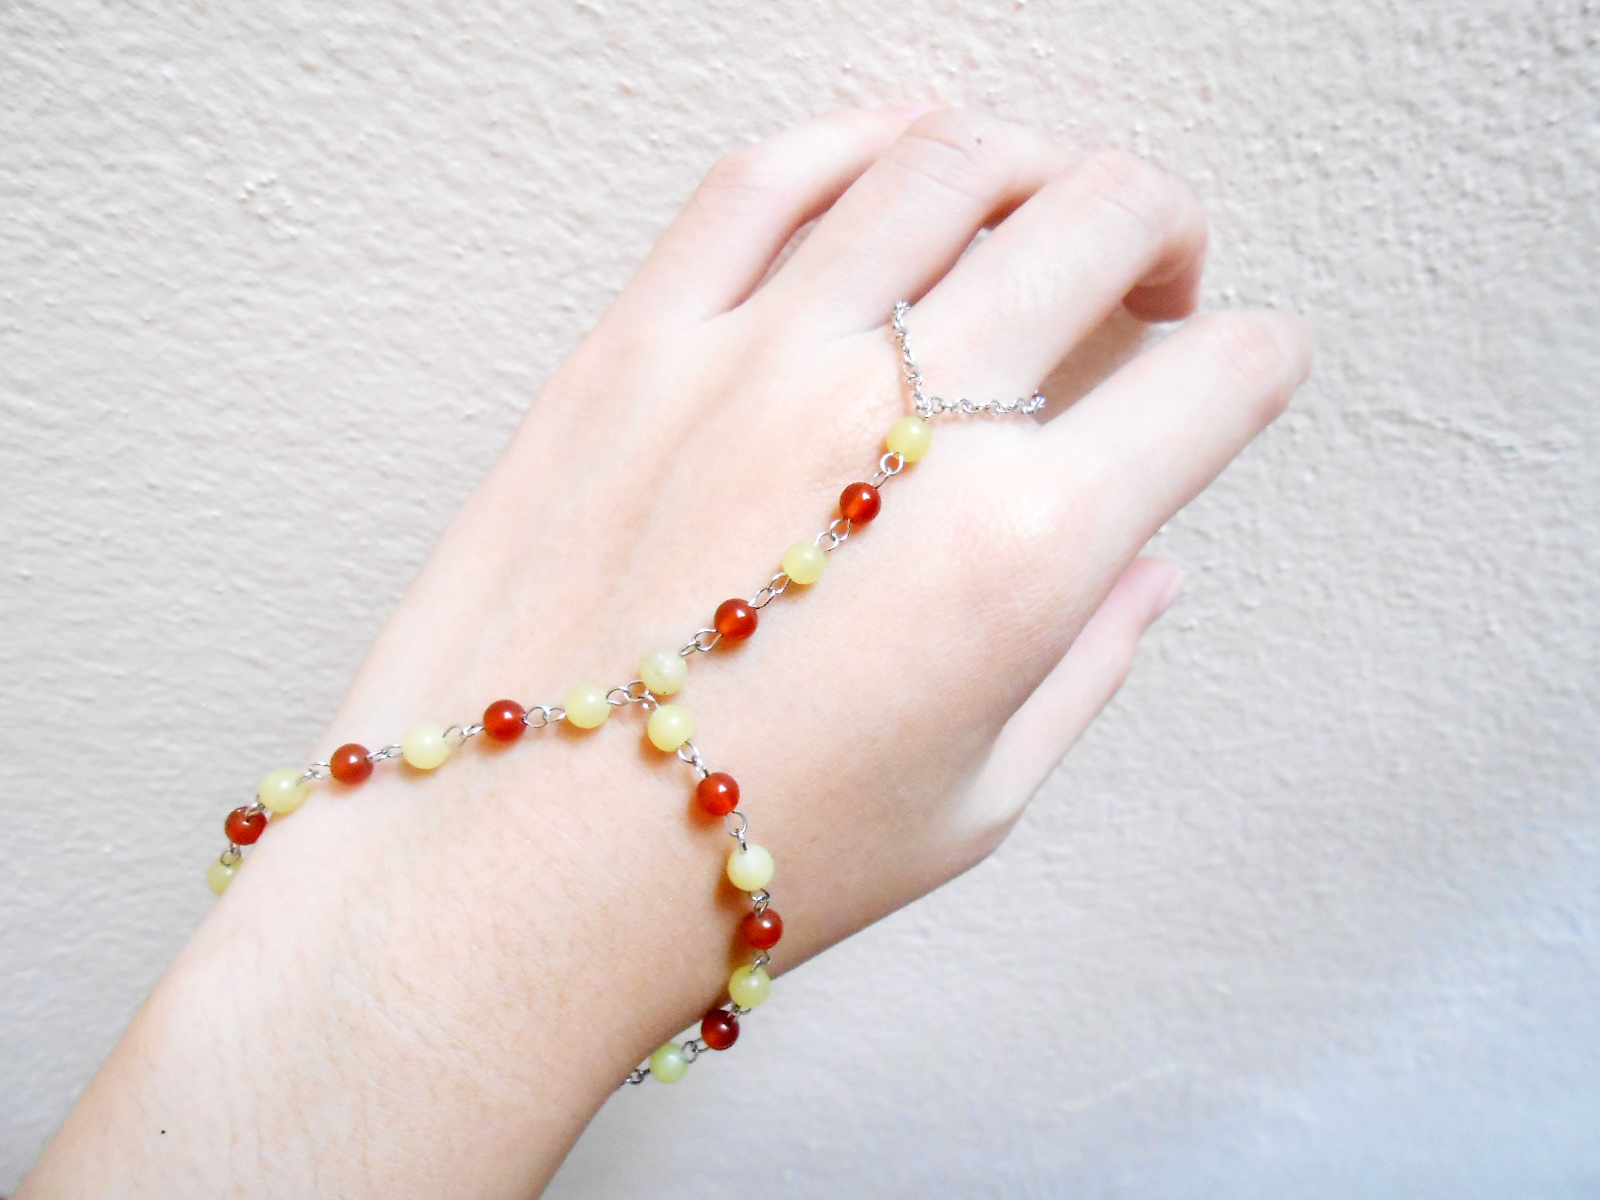 Slave Bracelet Ring with Orange Beads Stone Hand Link Chain ...